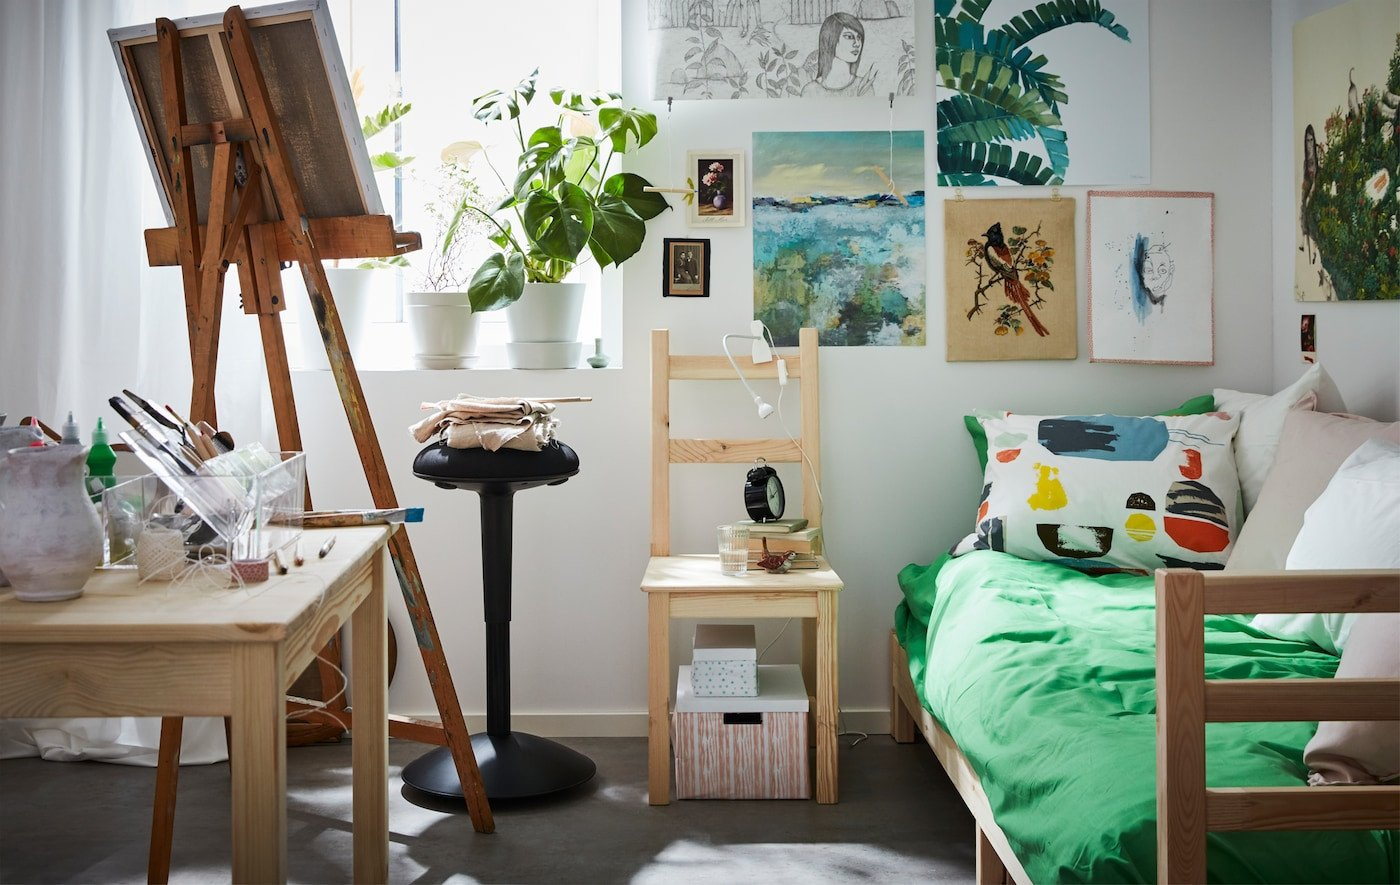 Decorative Chairs for Bedroom Elegant Creative and Cute Dorm Room Ideas Ikea